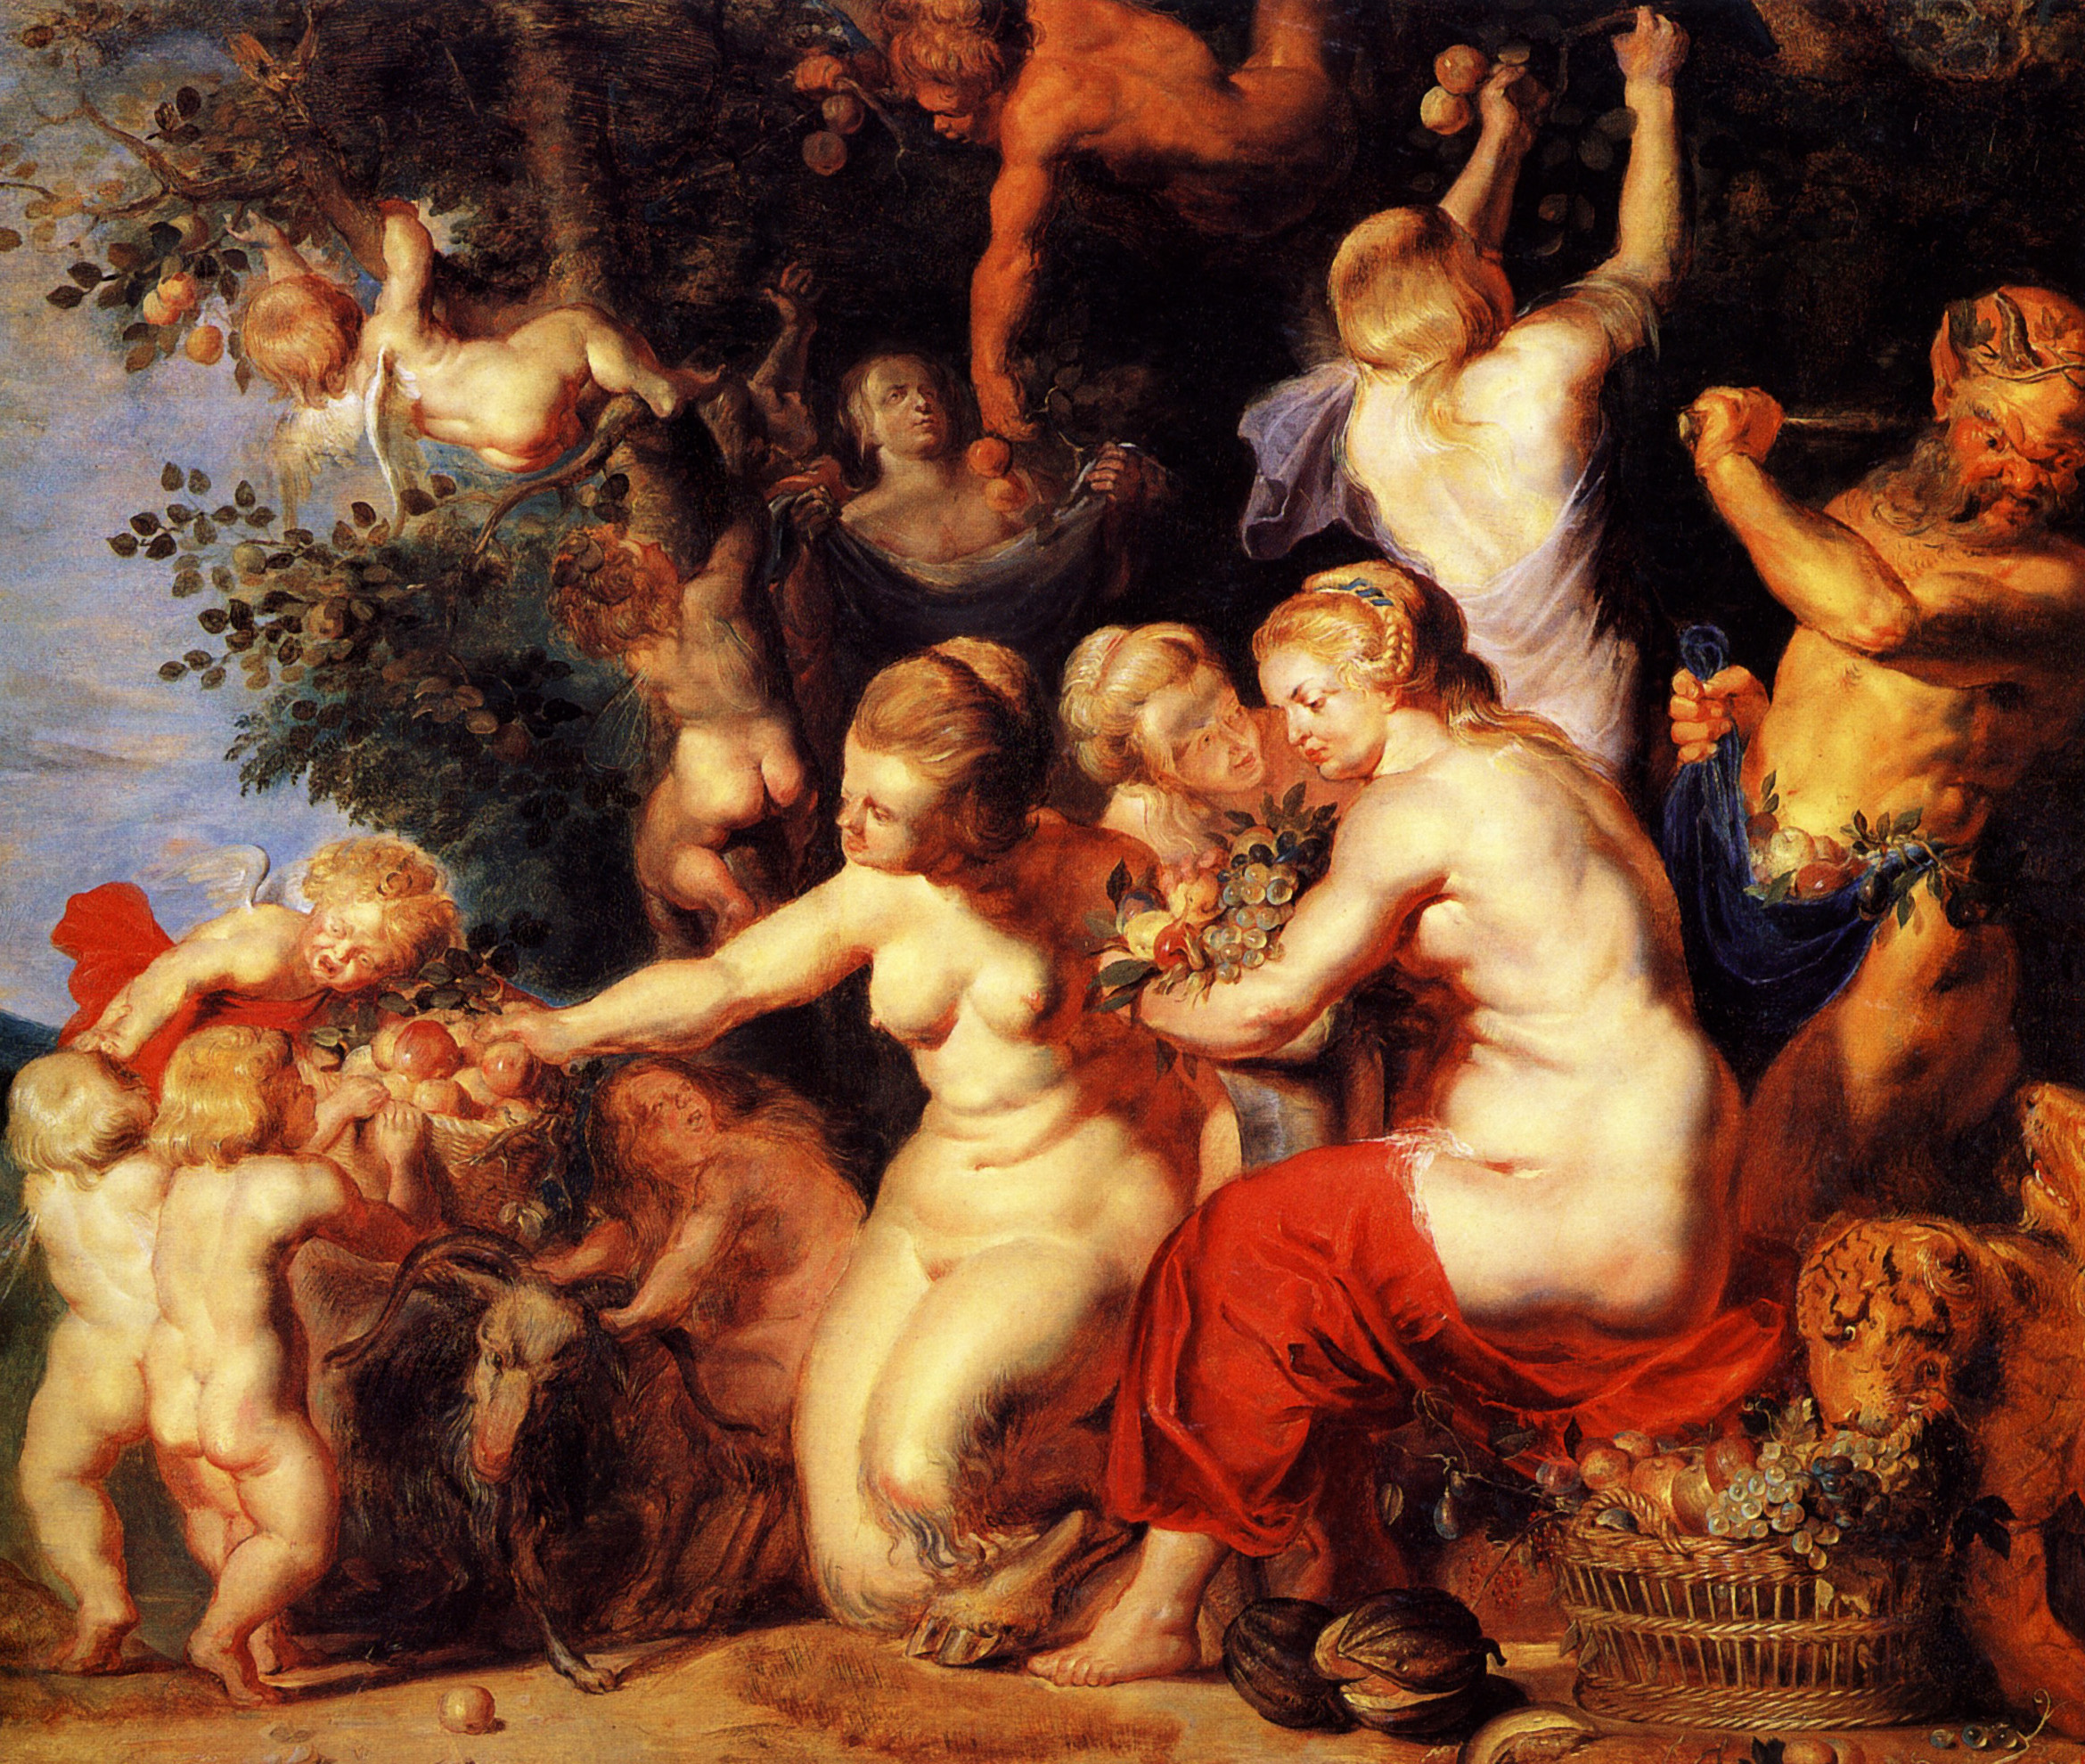 Nymphs and Satyrs: An Allegory of Fruitfulness